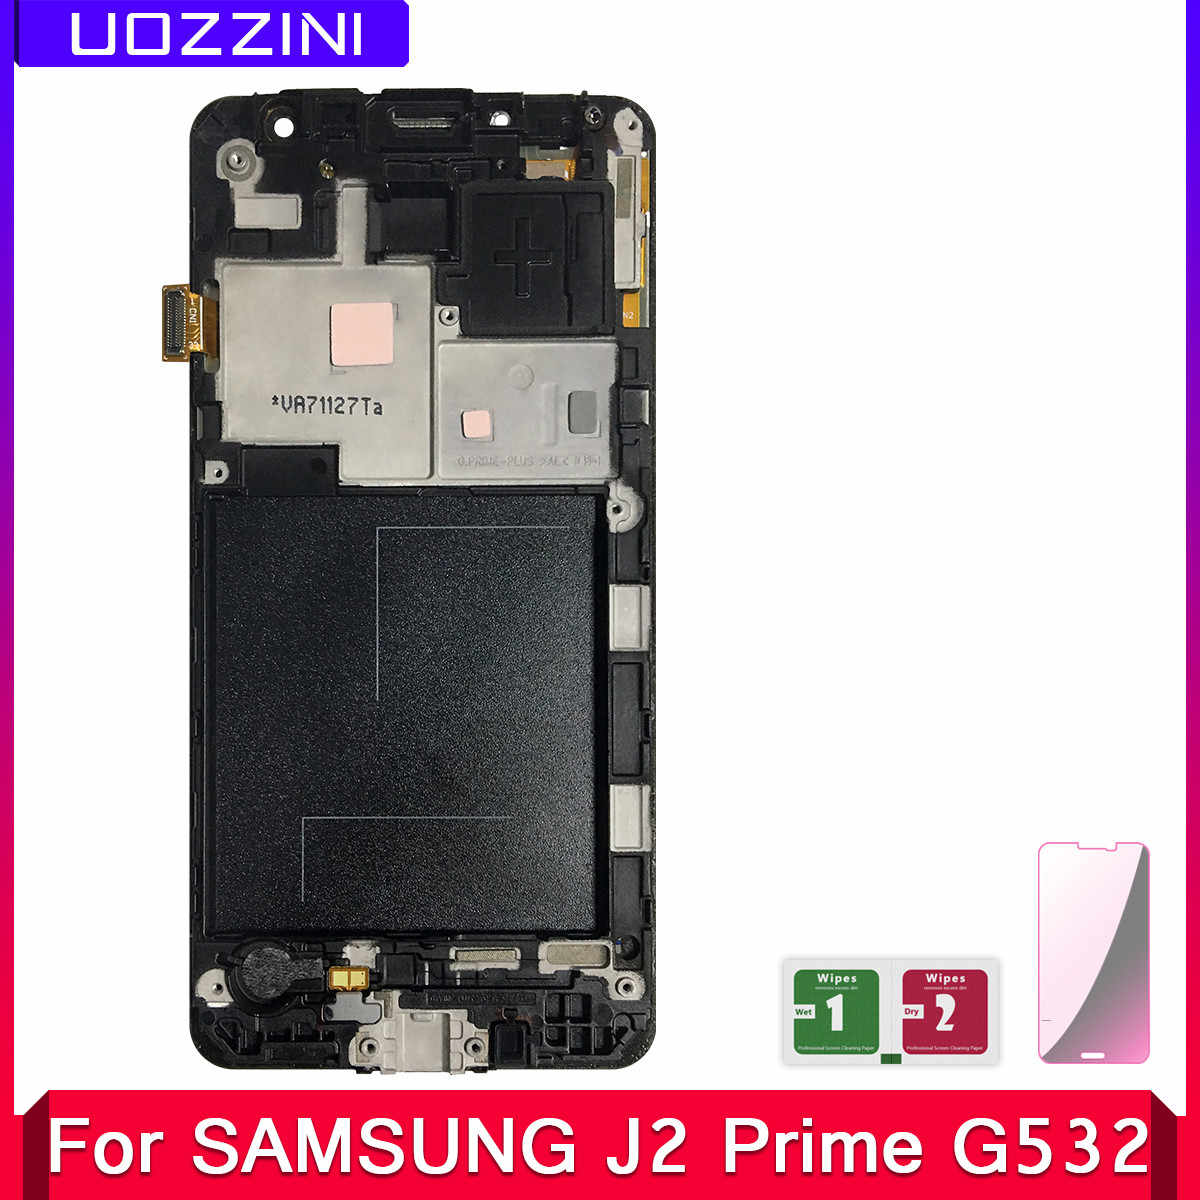 2 Pcs Lcds J2 Prime For Samsung Galaxy J2 Prime G532 SM-G532 SM-G532F G532F LCD Display Touch Screen Digitizer With Frame